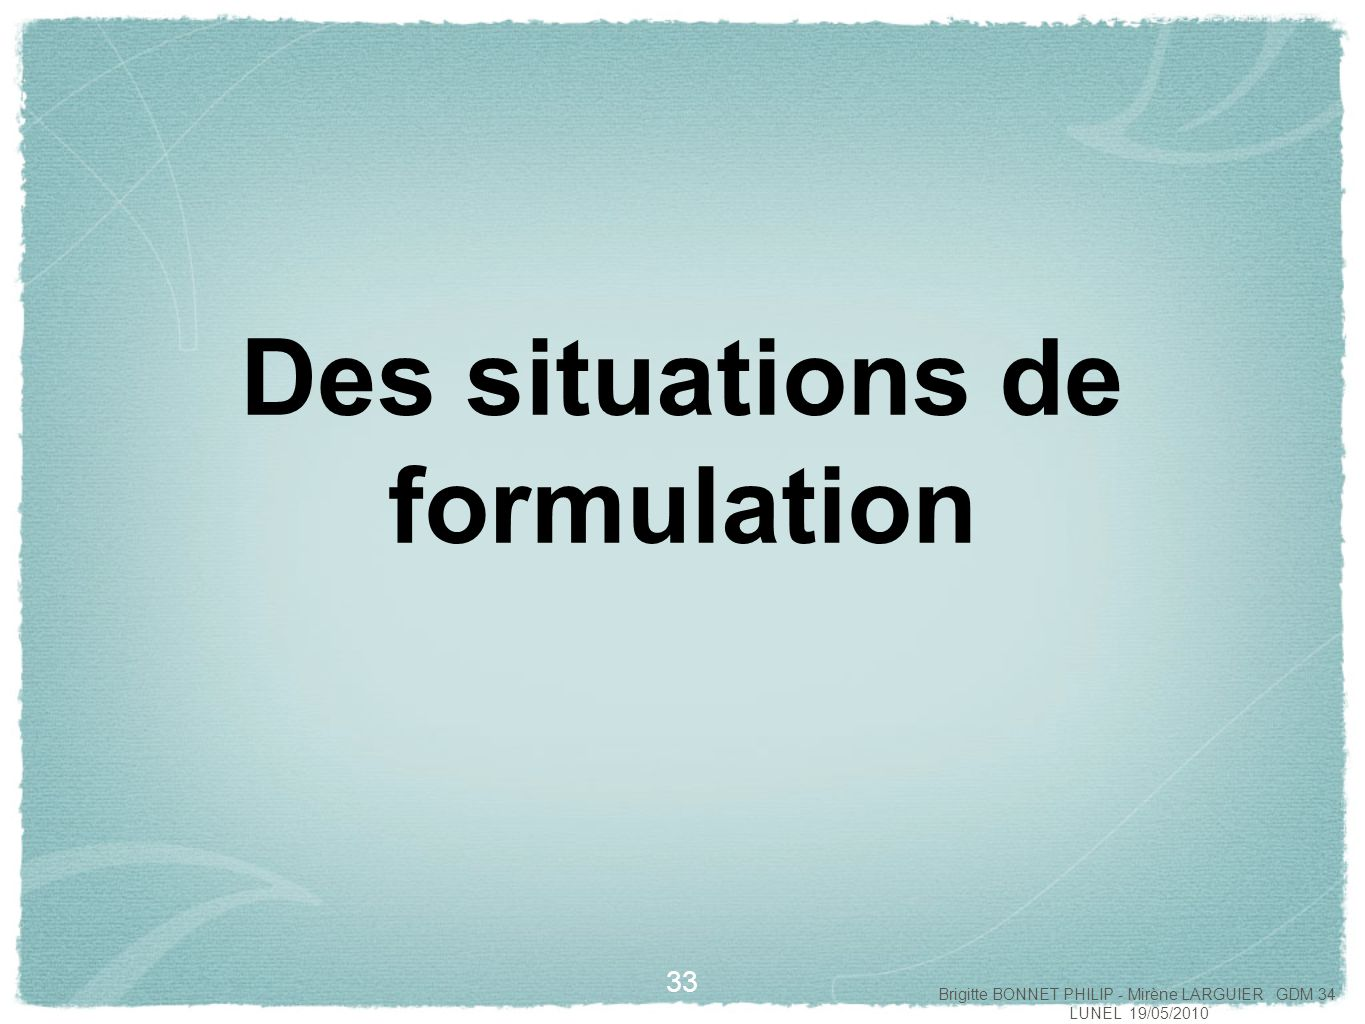 Des situations de formulation